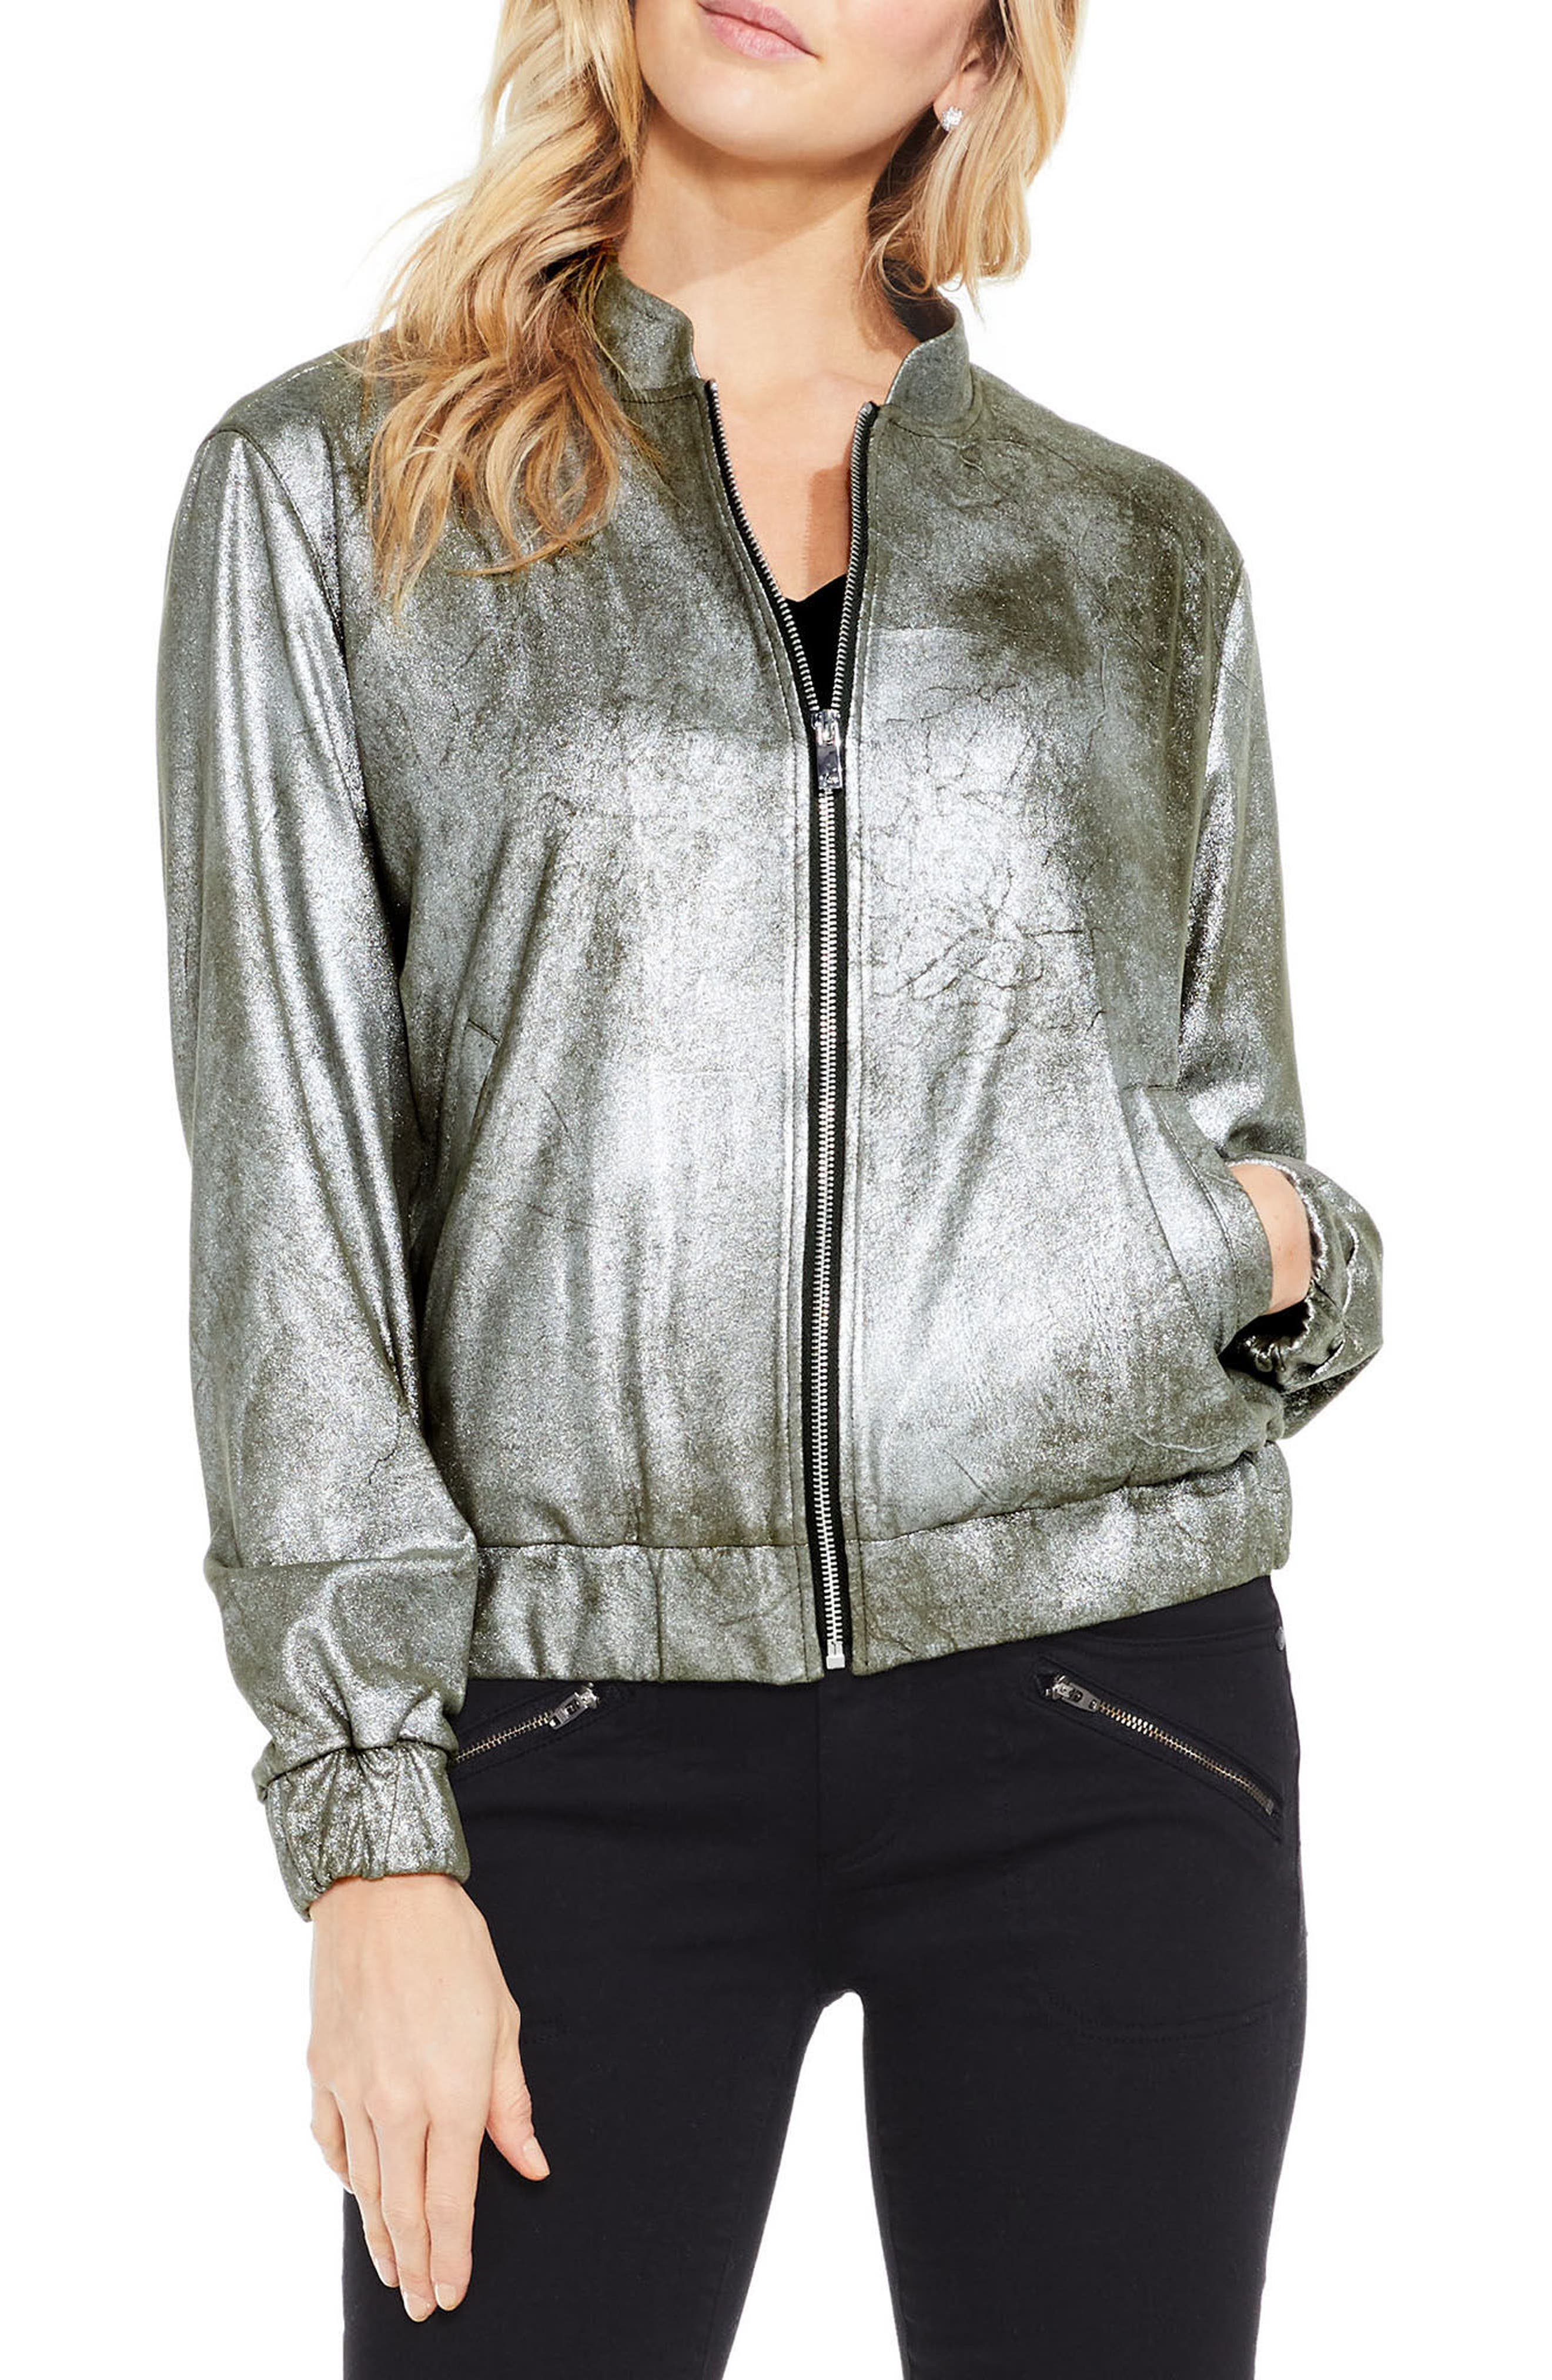 Foiled Ponte Knit Bomber Jacket,                         Main,                         color, Military Green